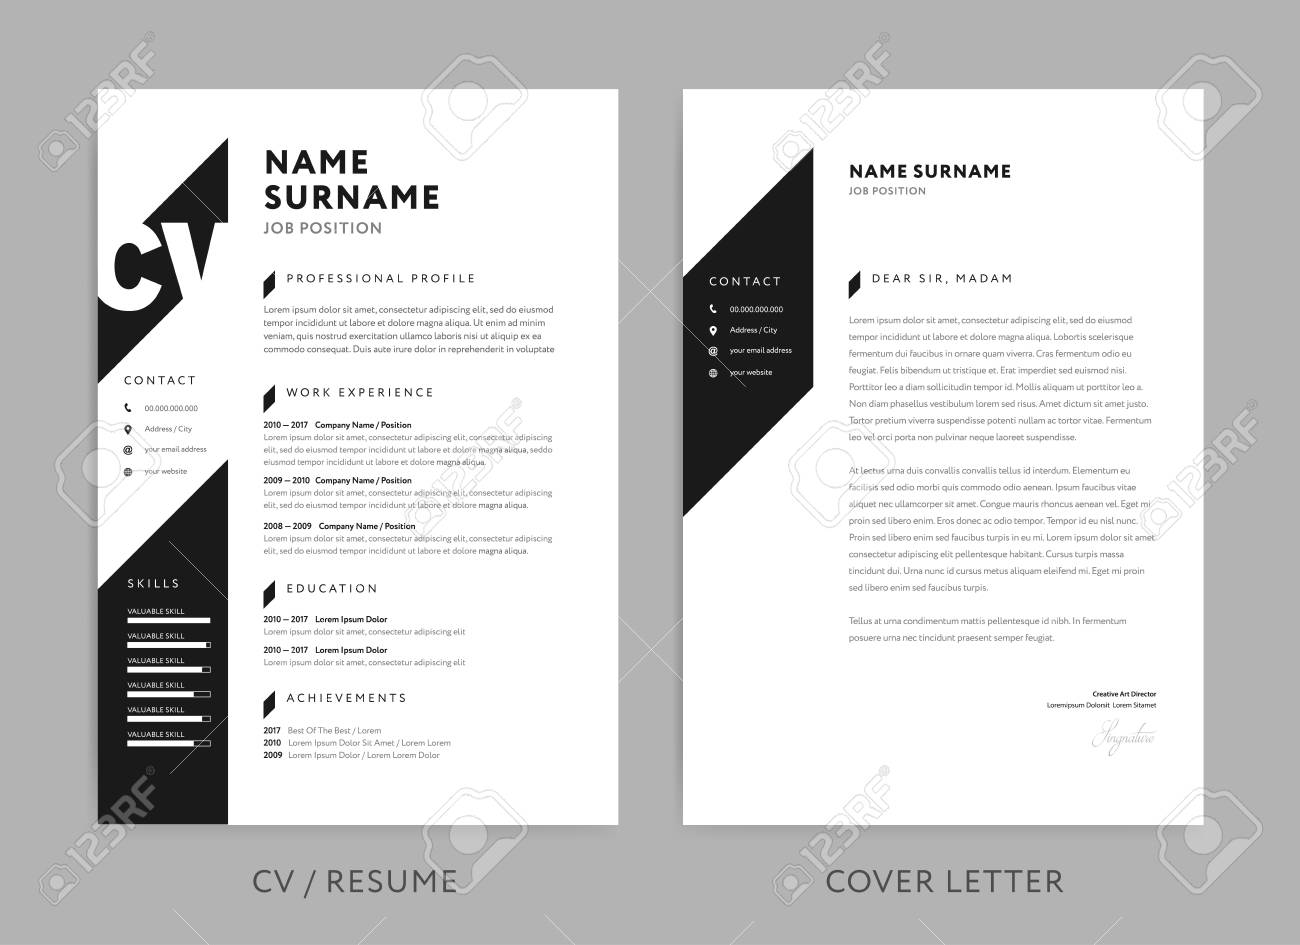 Minimalist CV / resume and cover letter minimal design template on letter design objects, letter design examples, letter design stencils, letter design christmas, letter design paper, letter design ideas, letter design fonts, letter design cards, letter design printables, letter typography, letter g designs, letter design drawings, letter design clipart, letter t designs, letter design logos, letter design help,